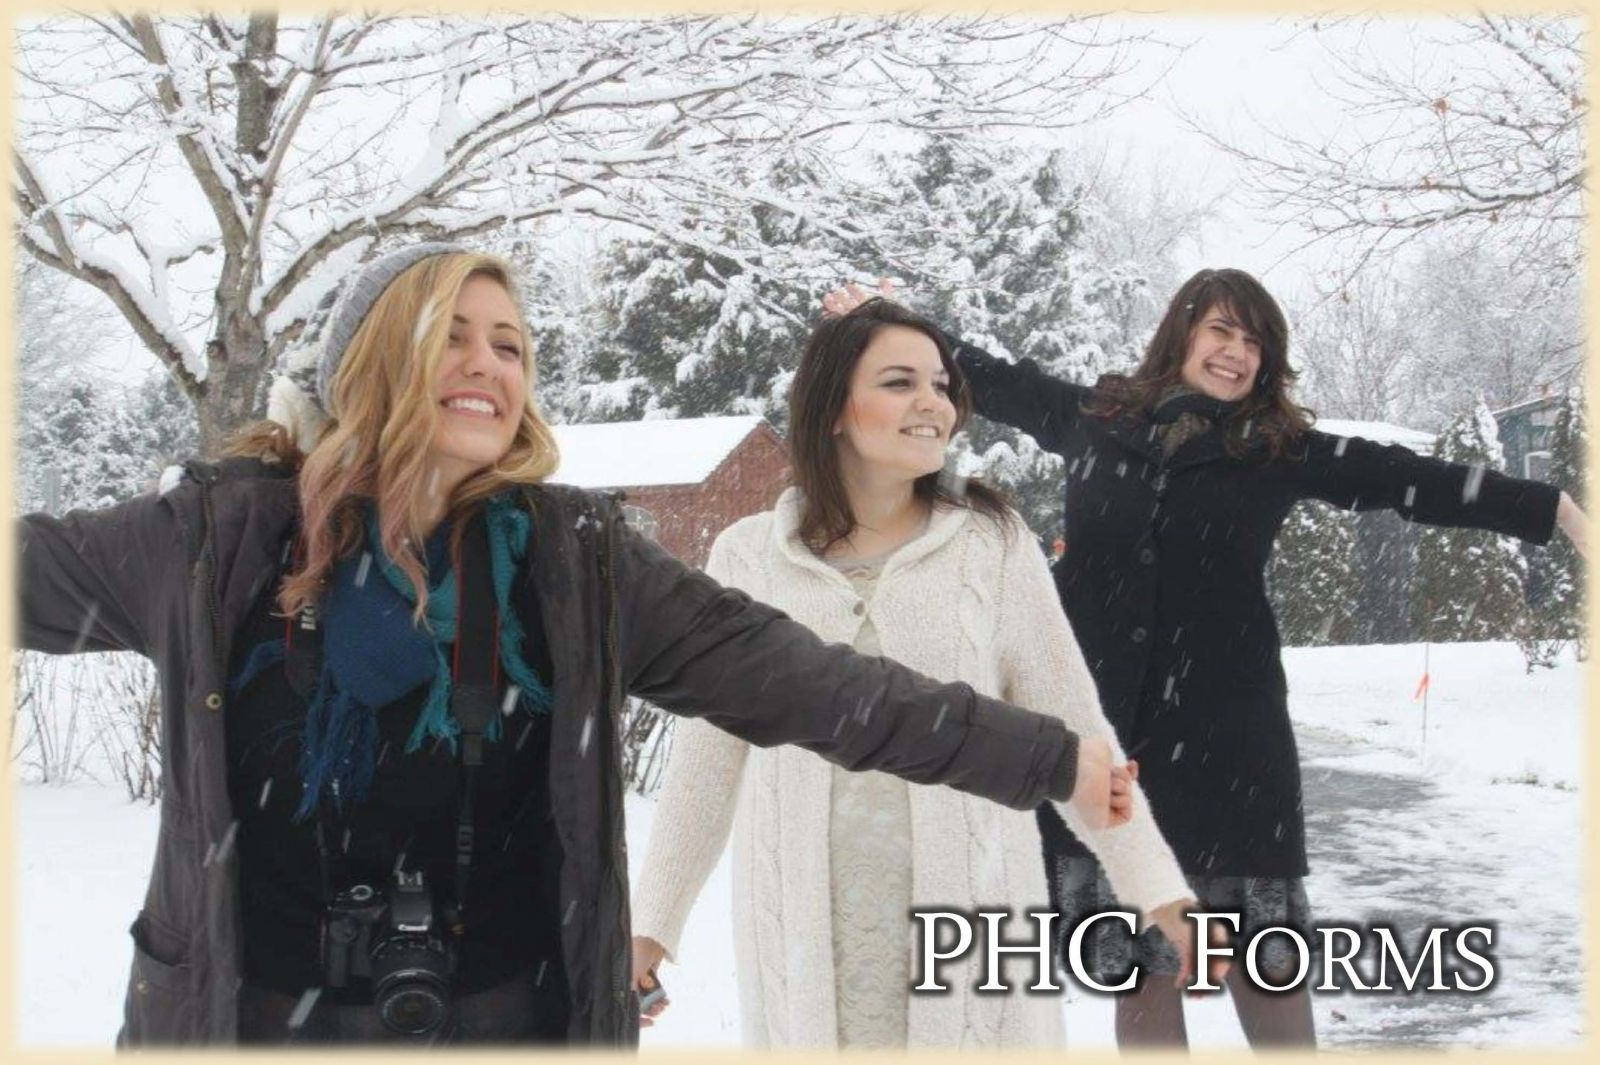 PHC Forms